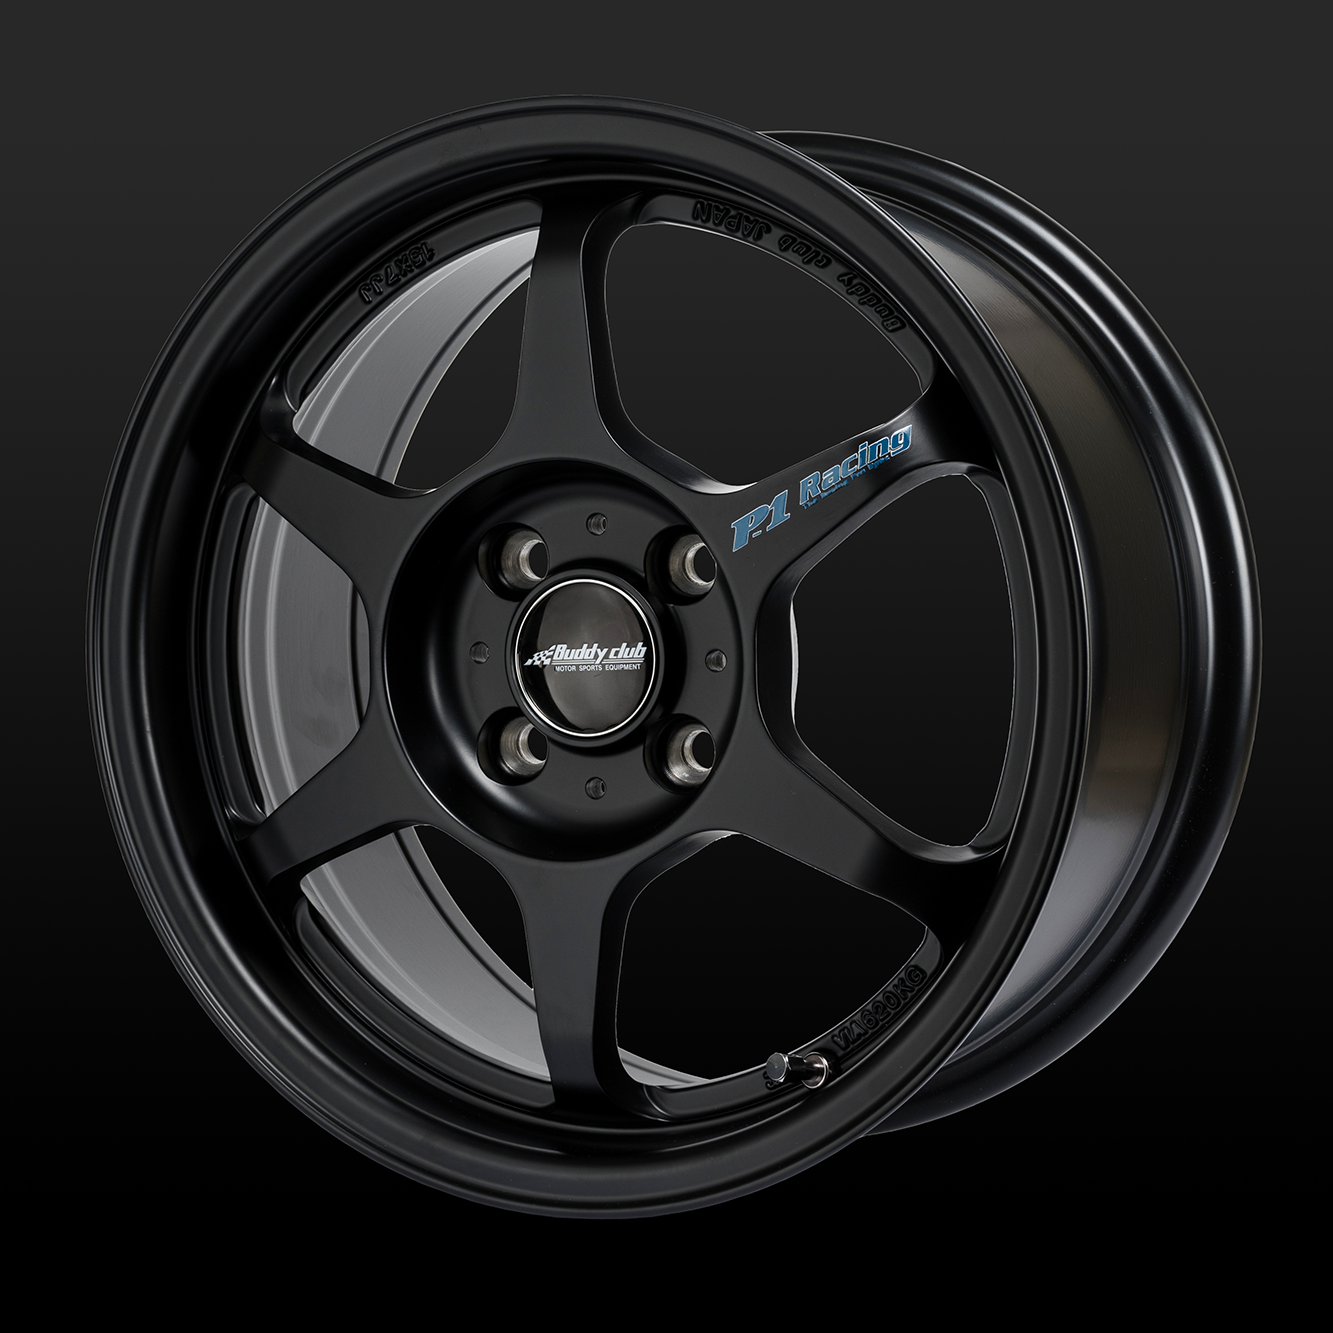 "Buddyclub P1 SF 15"" x 8.0 +32 OFFSET 5/114.3 BLACK WHEEL"